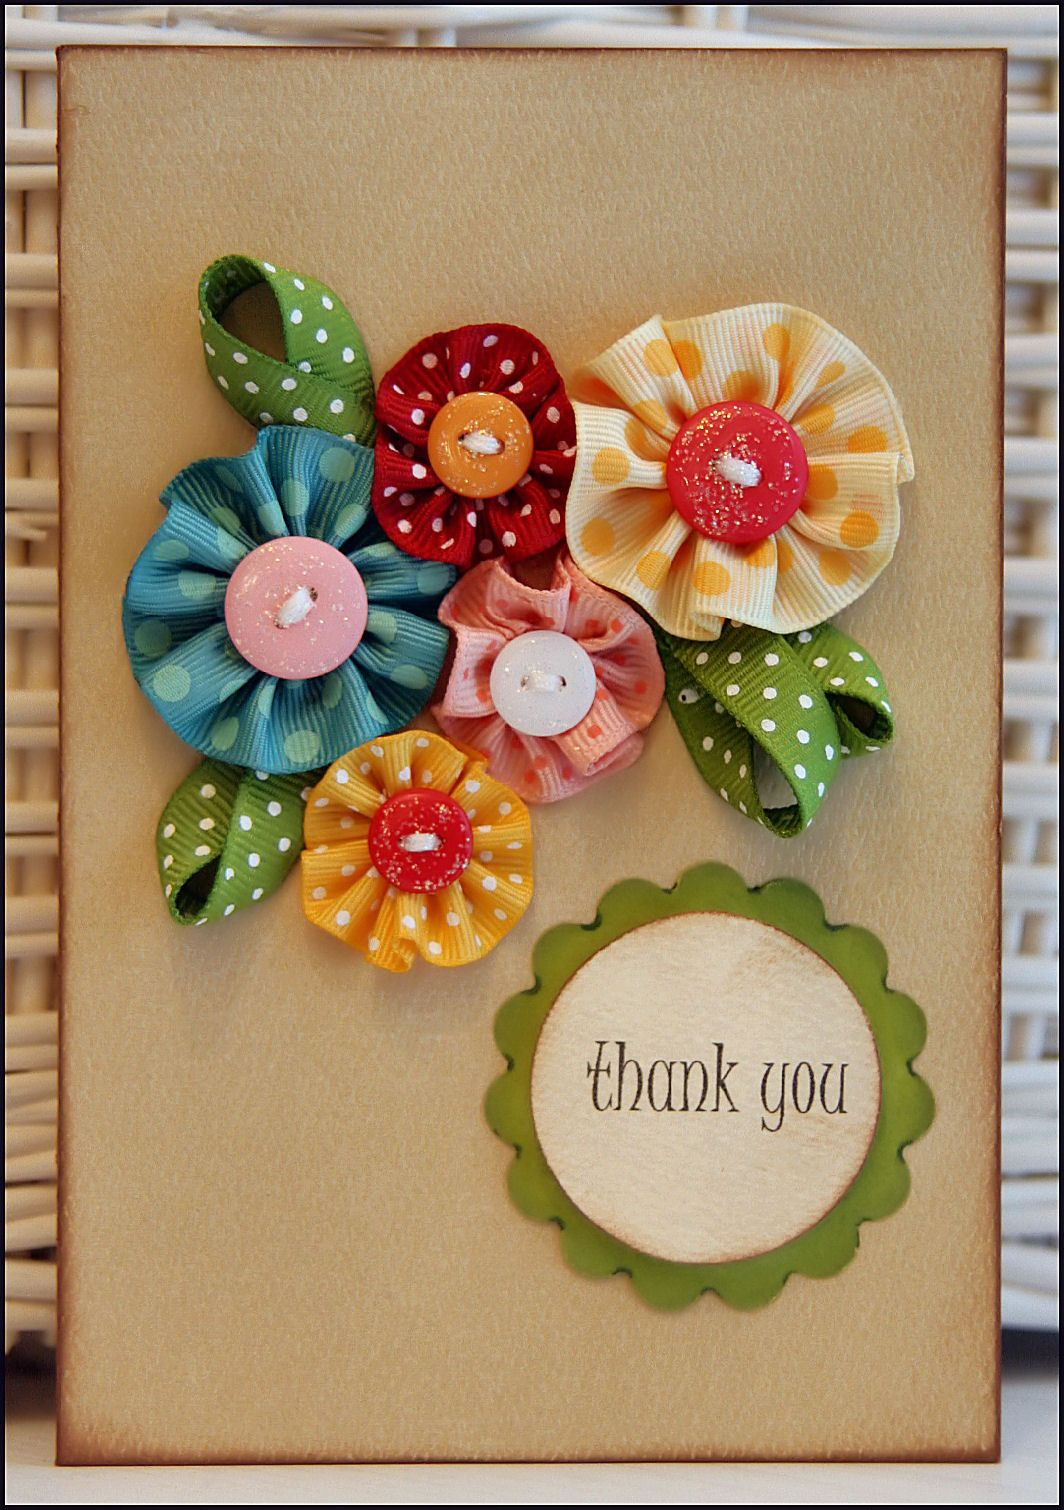 Ribbon flowers card i bet this same idea could be used with ribbon flowers card i bet this same idea could be used with crocheted flowers too so beautiful cards pinterest flower cards flower and cards izmirmasajfo